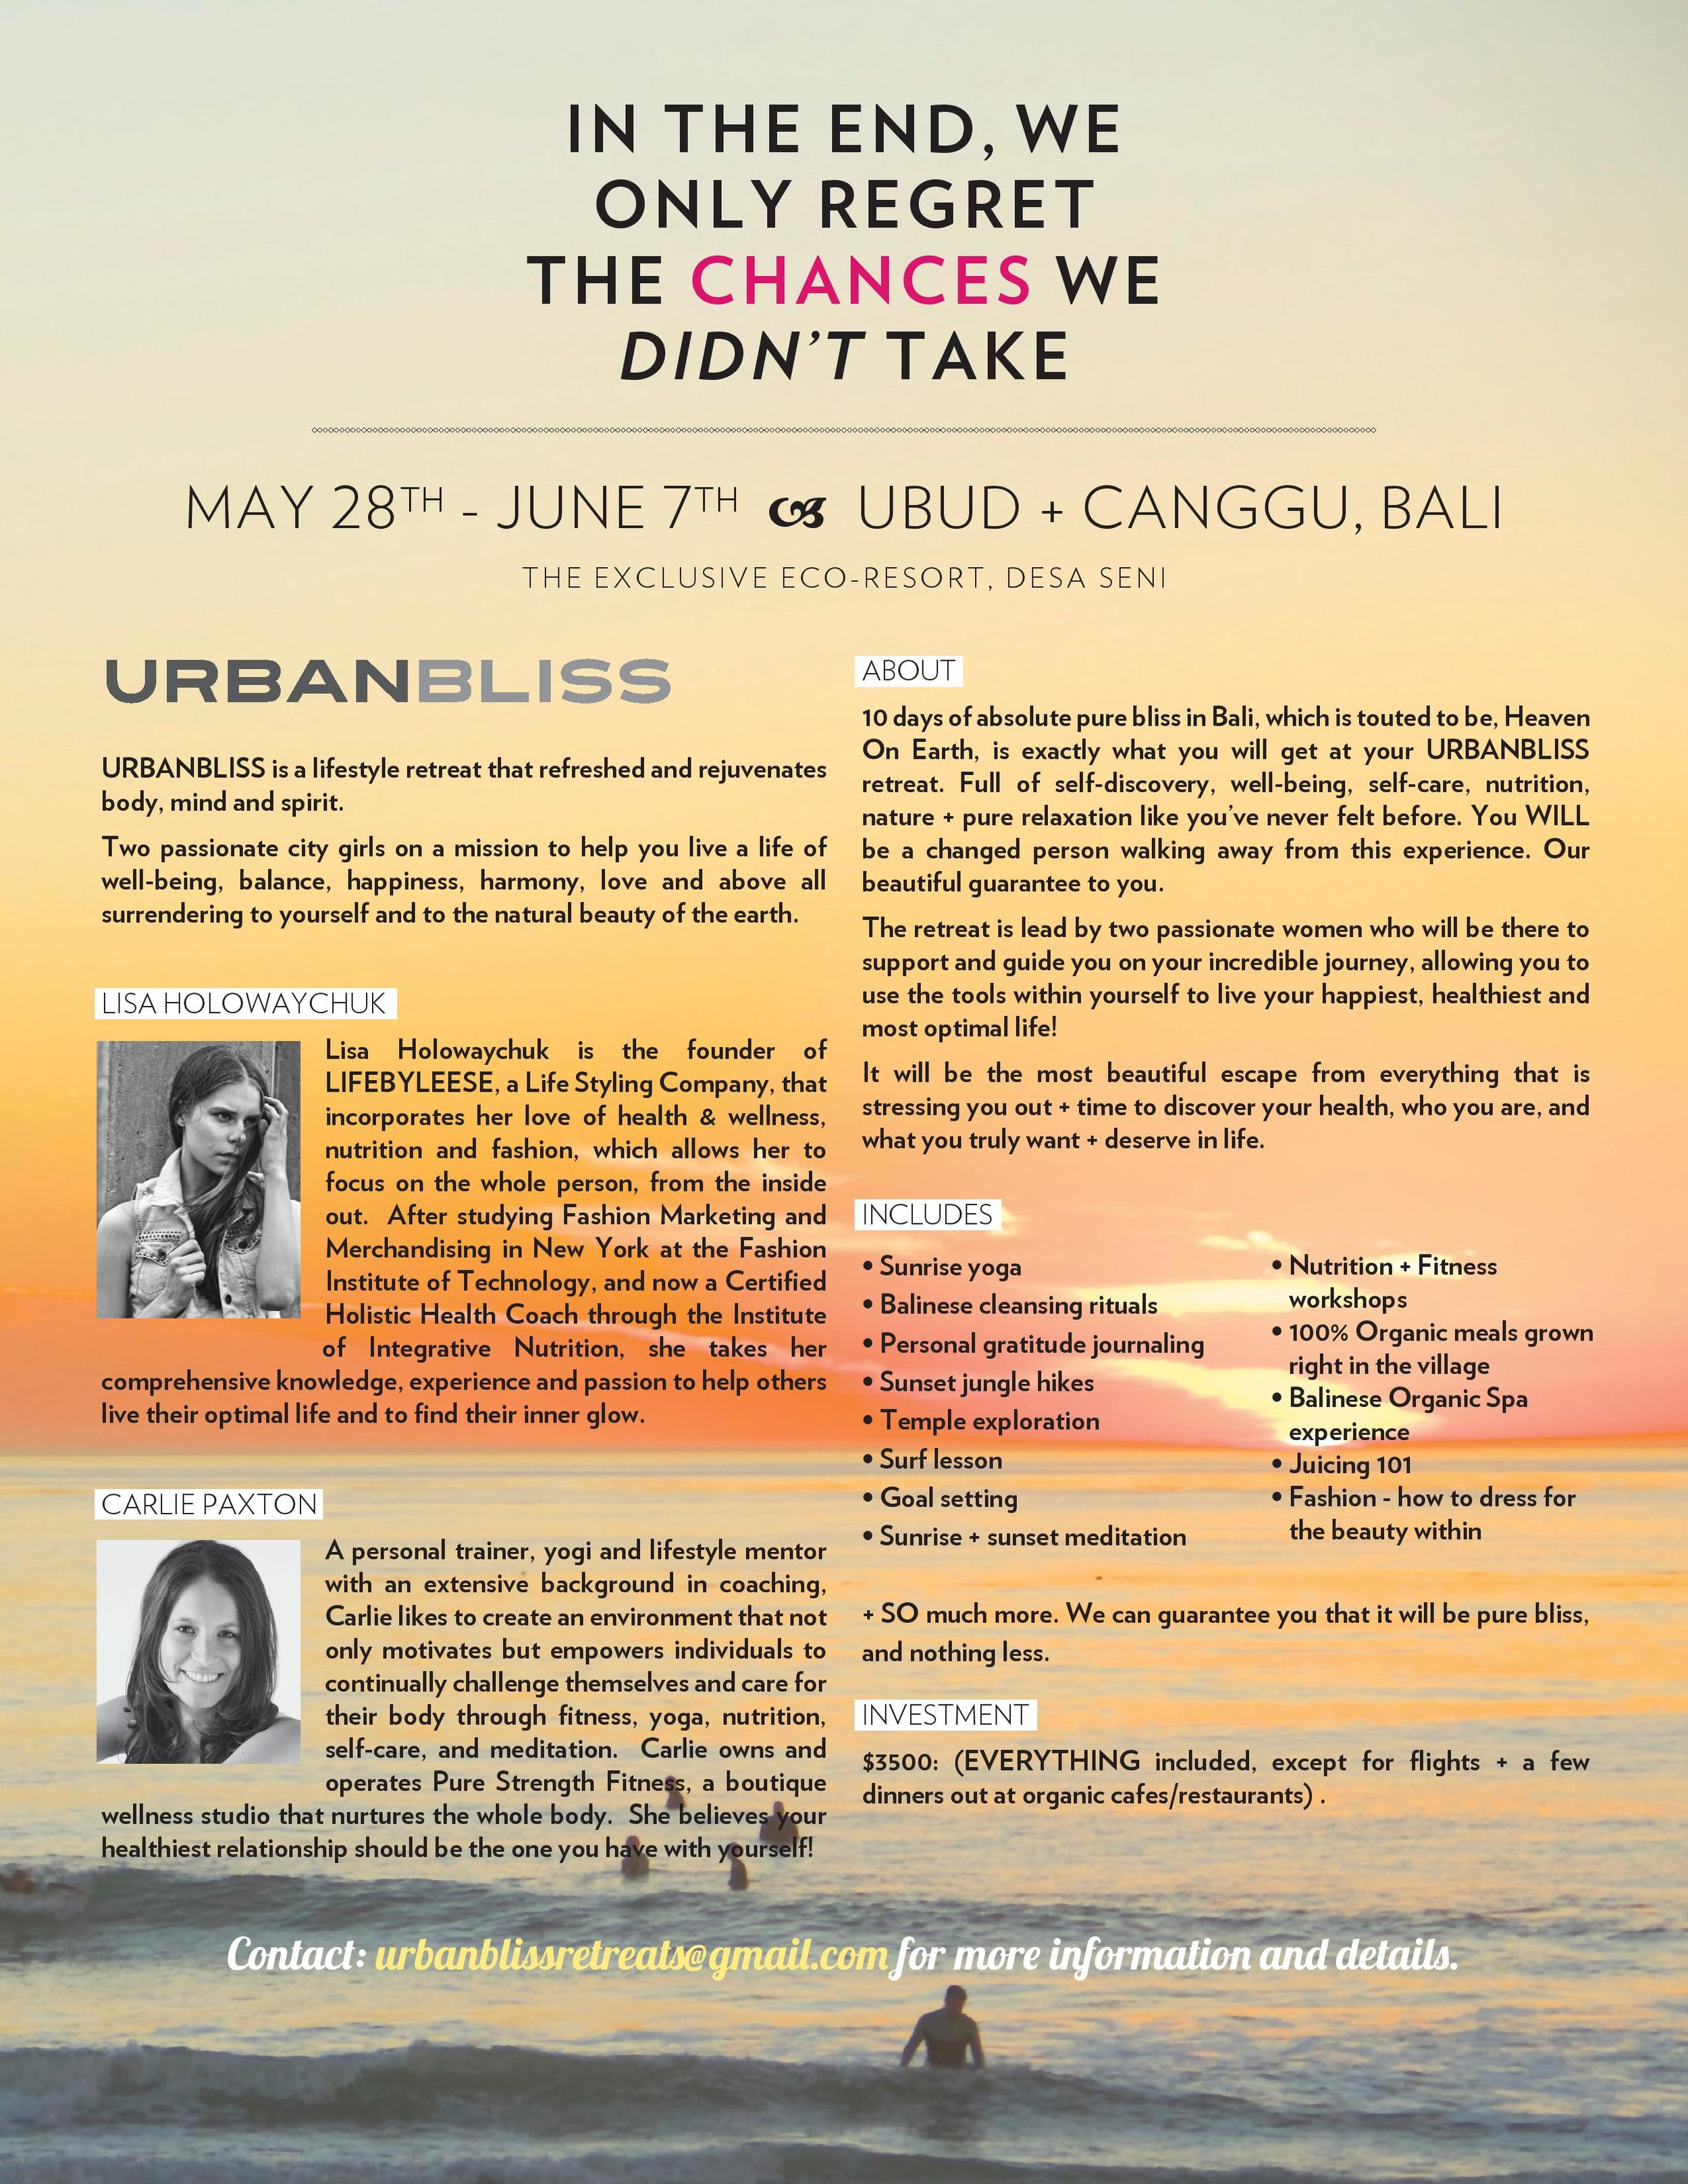 URBAN_BLISS_RETREAT_Poster_thailand-page-001